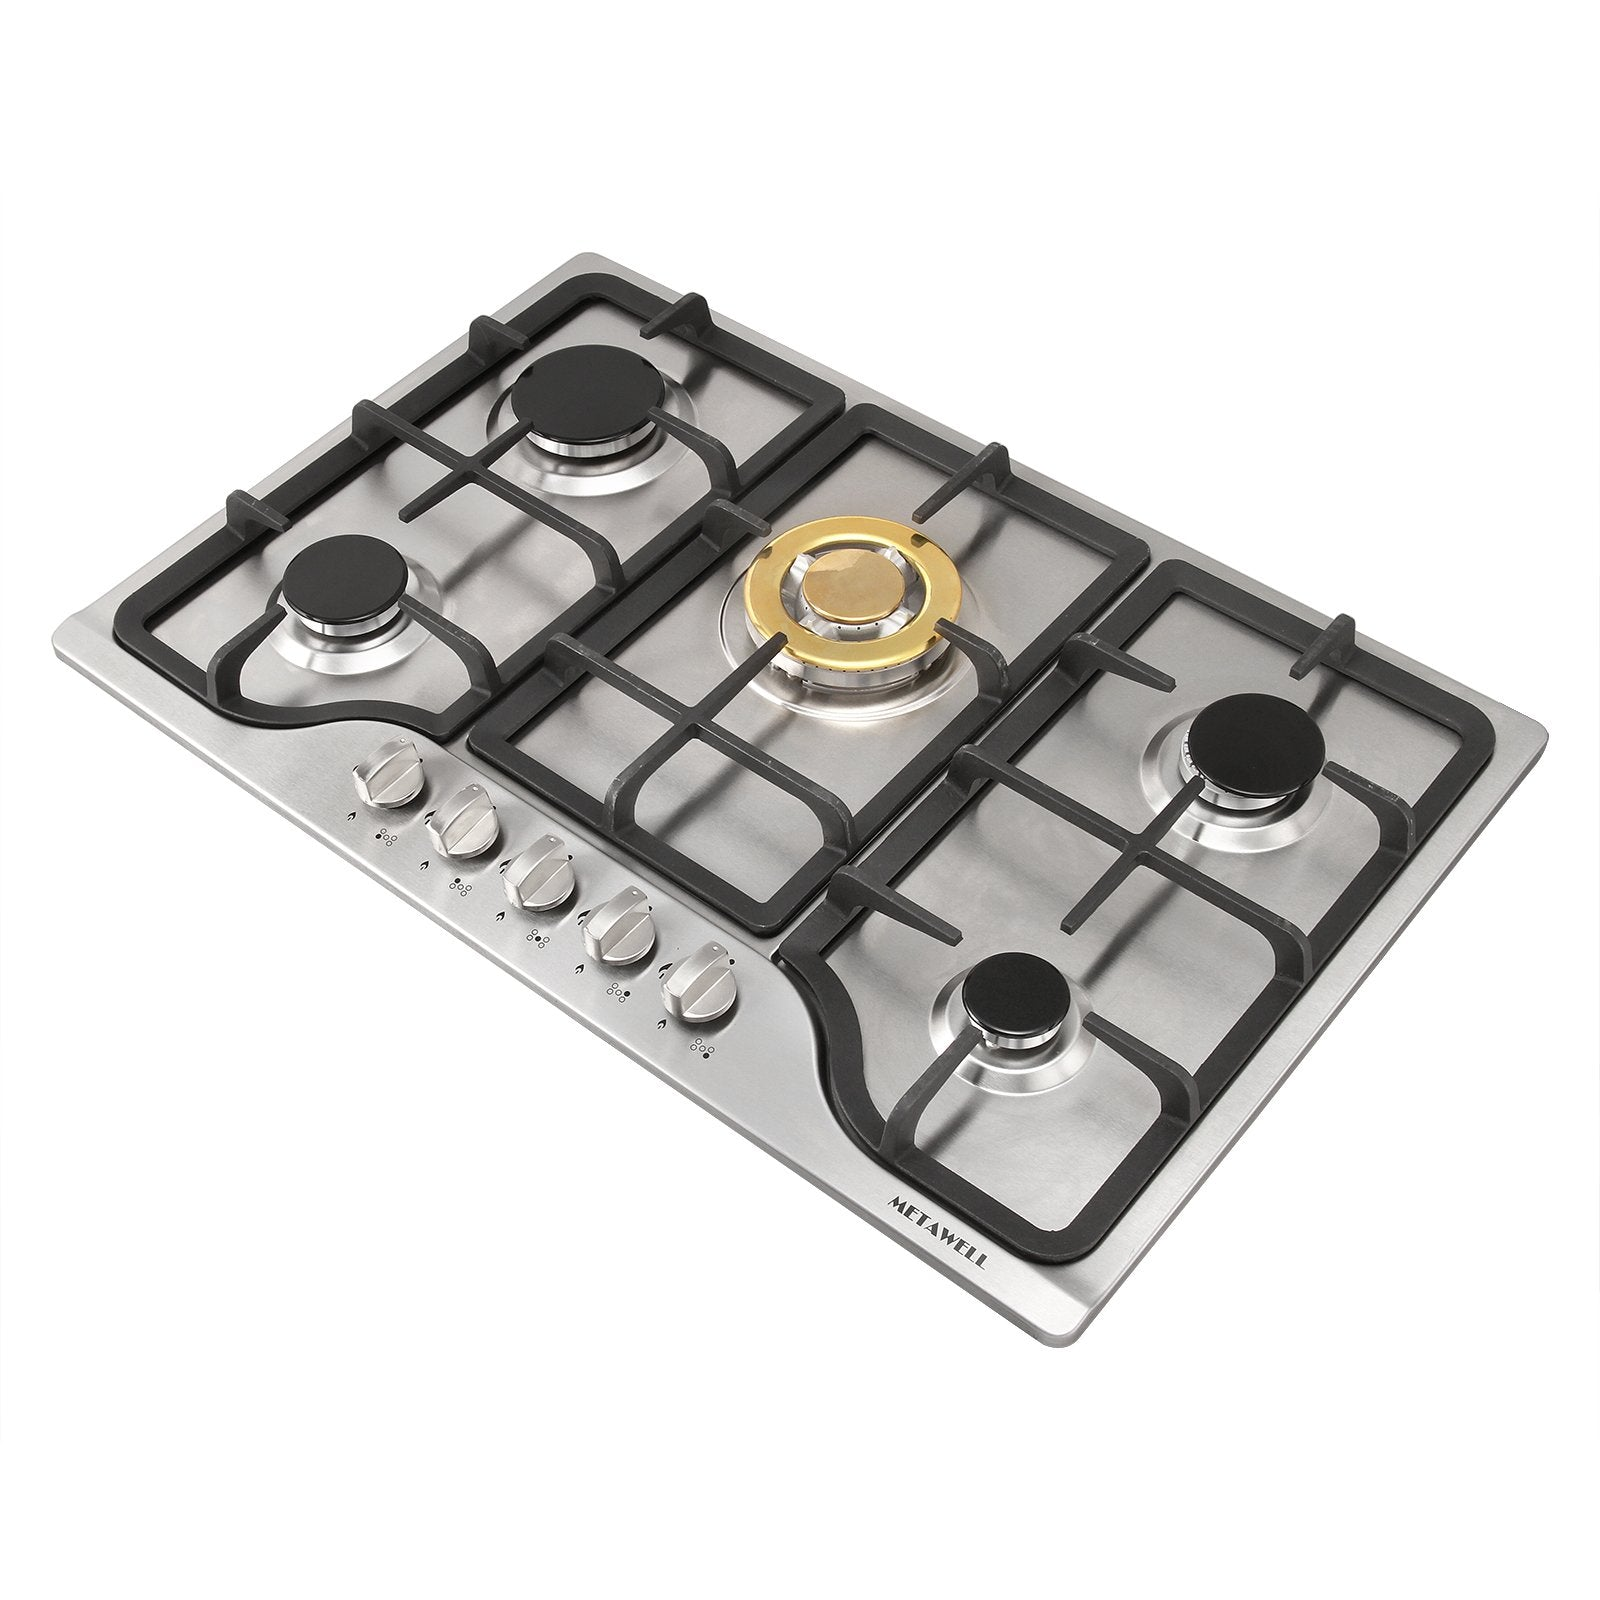 "METAWELL New 30"" Stainless Steel 5 Burners Cooktops Built-in Stoves Natural Gas Hob Cooker"